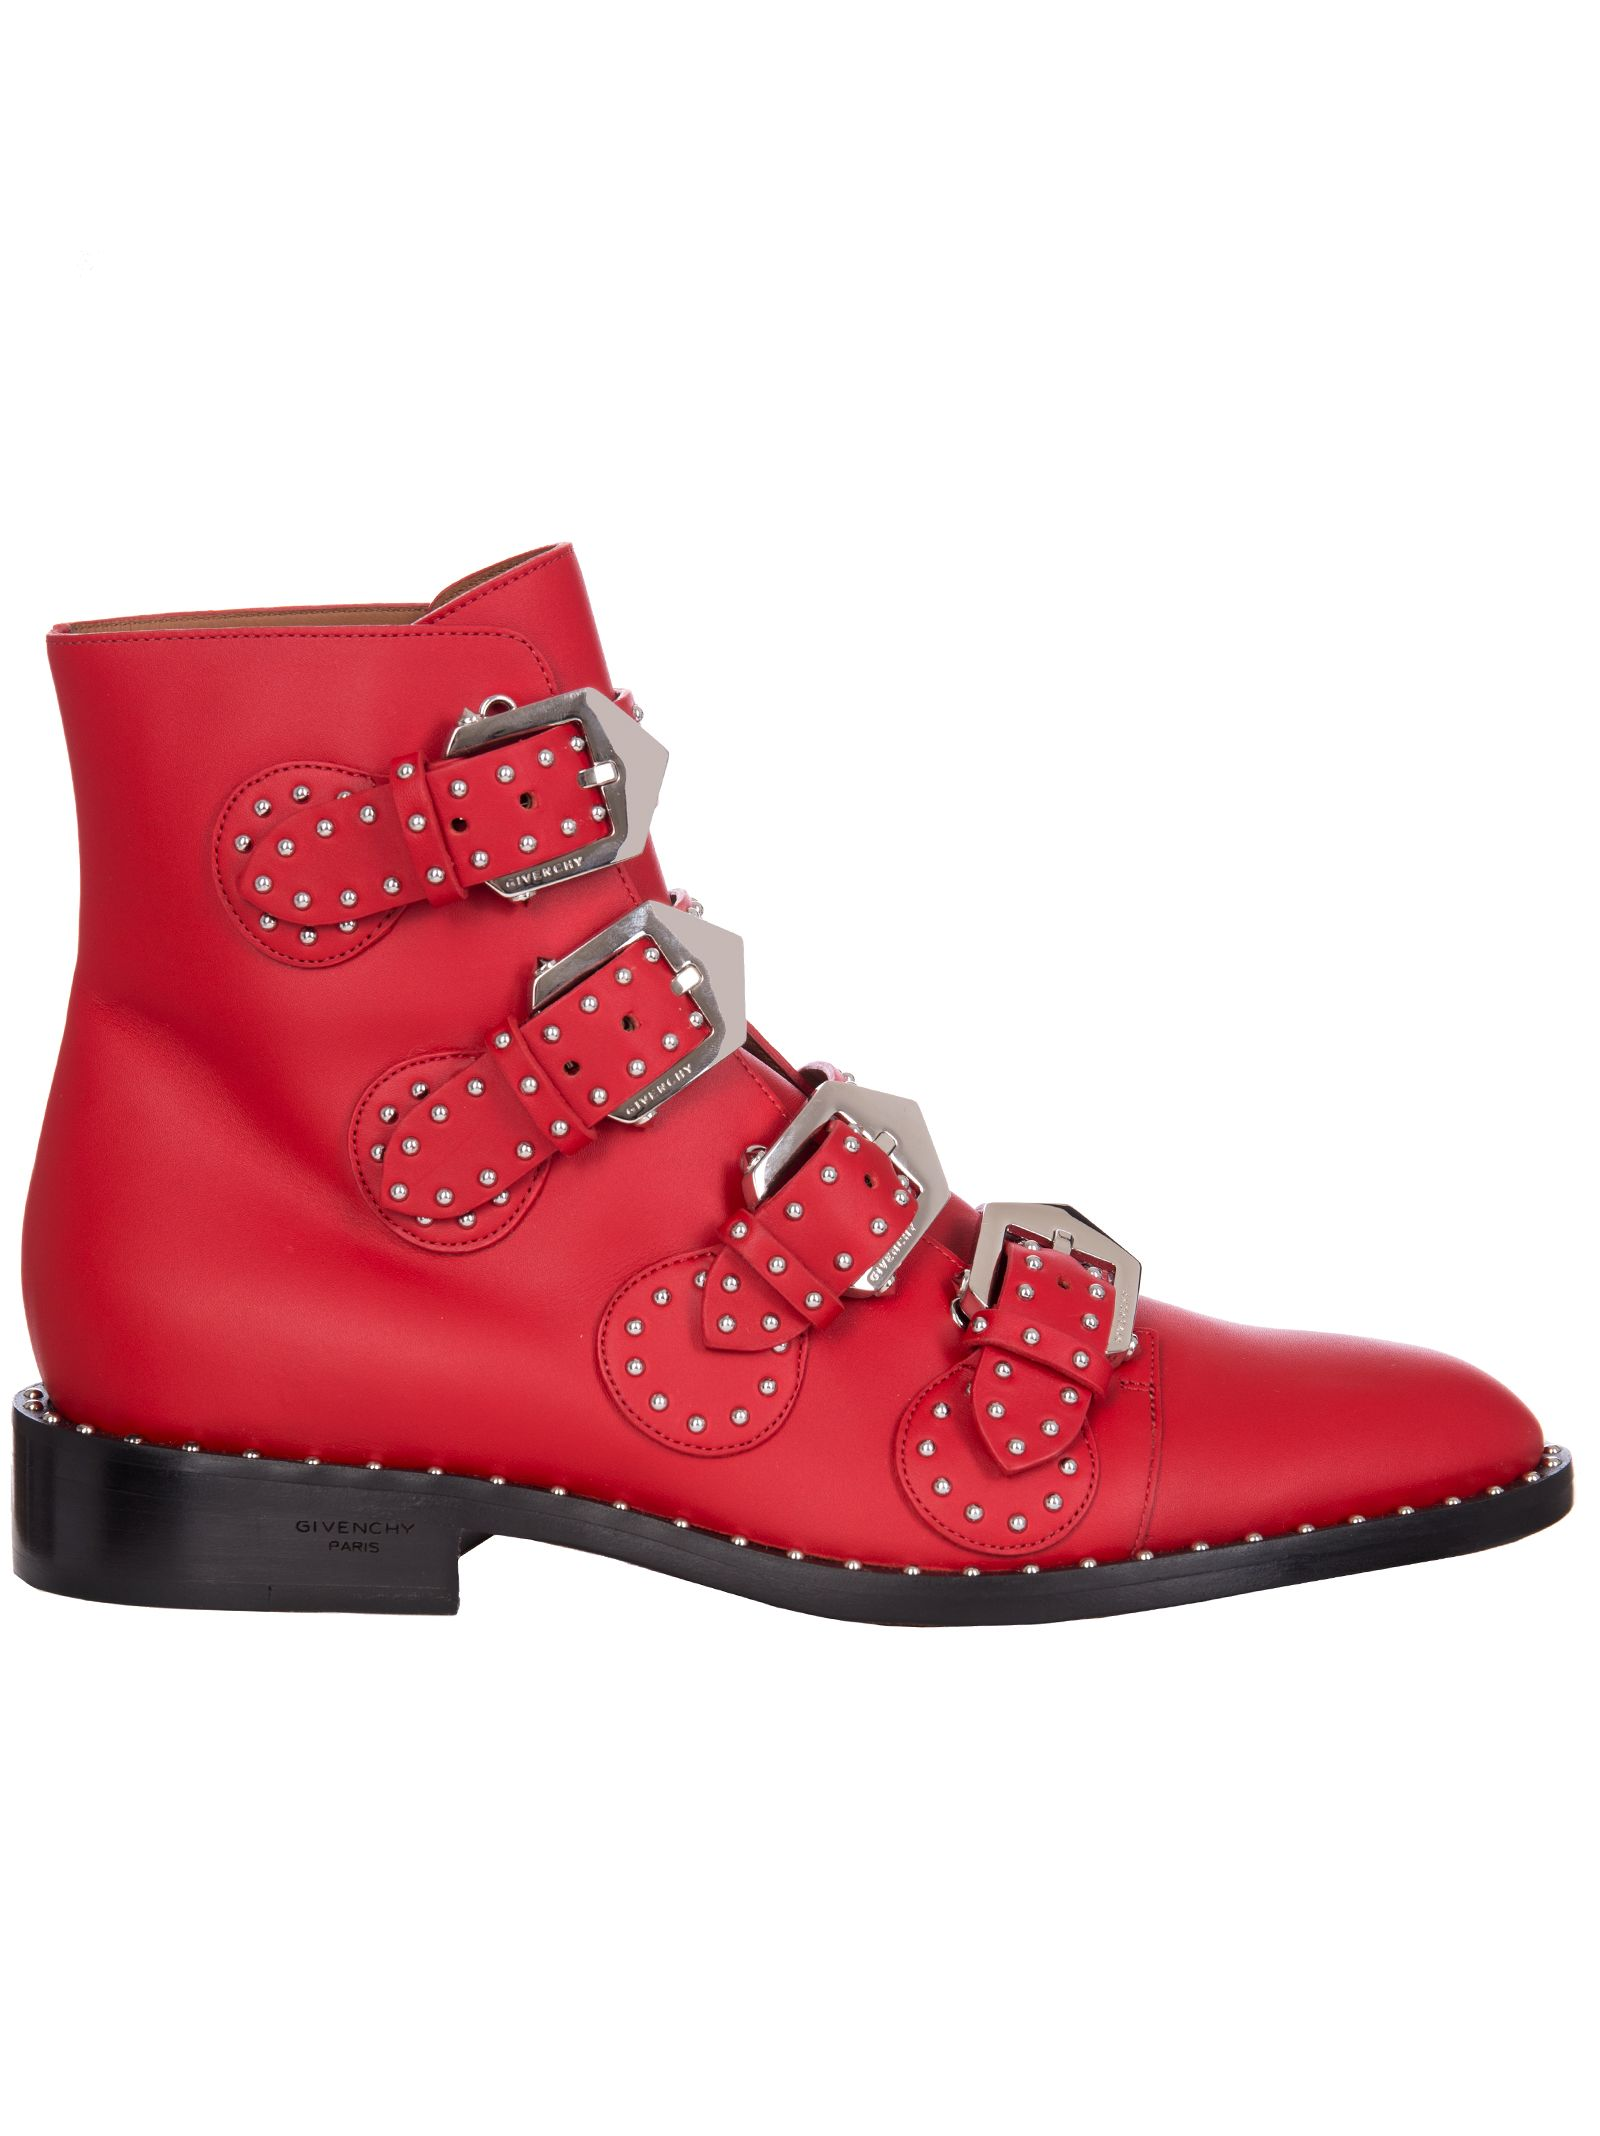 Elegant Line Studded Ankle Boots In Red, Rosso